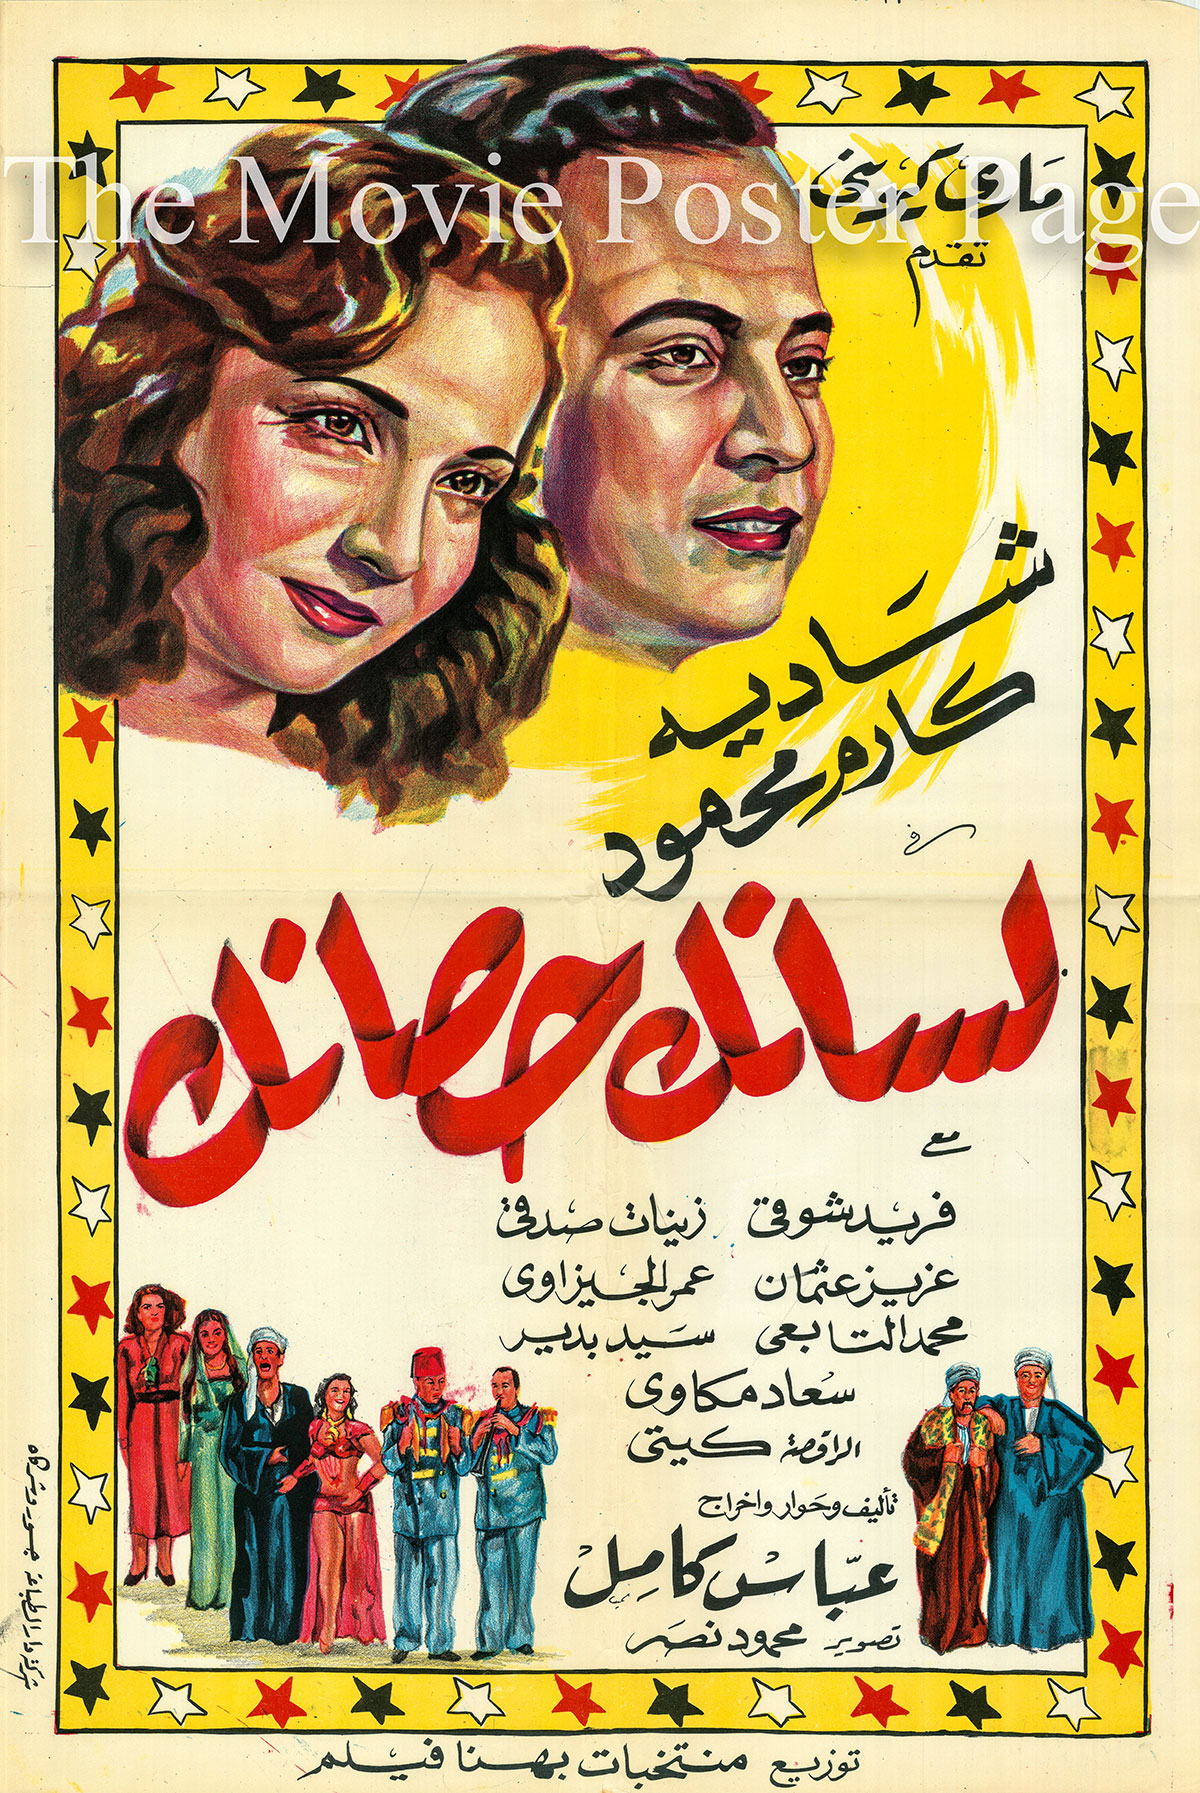 Pictured is an Egyptian promotional poster for the 1953 Abbas Kamel film Guard Your Tongue, starring Shadia.